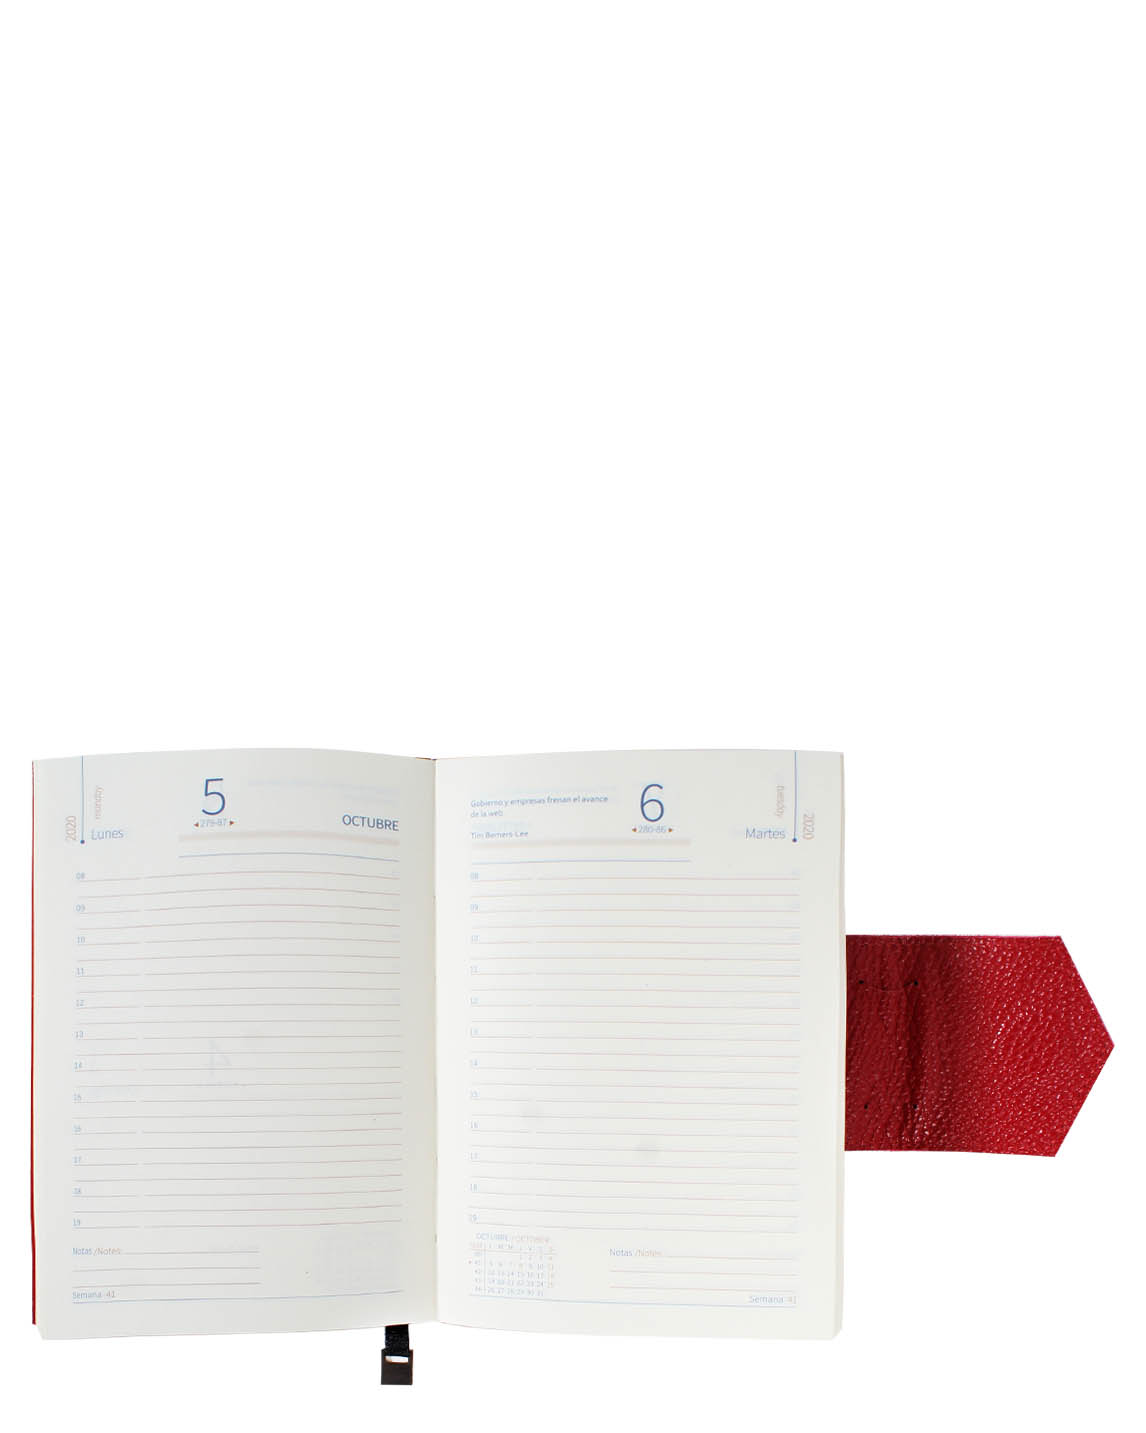 Agenda AG-129 Color Rojo